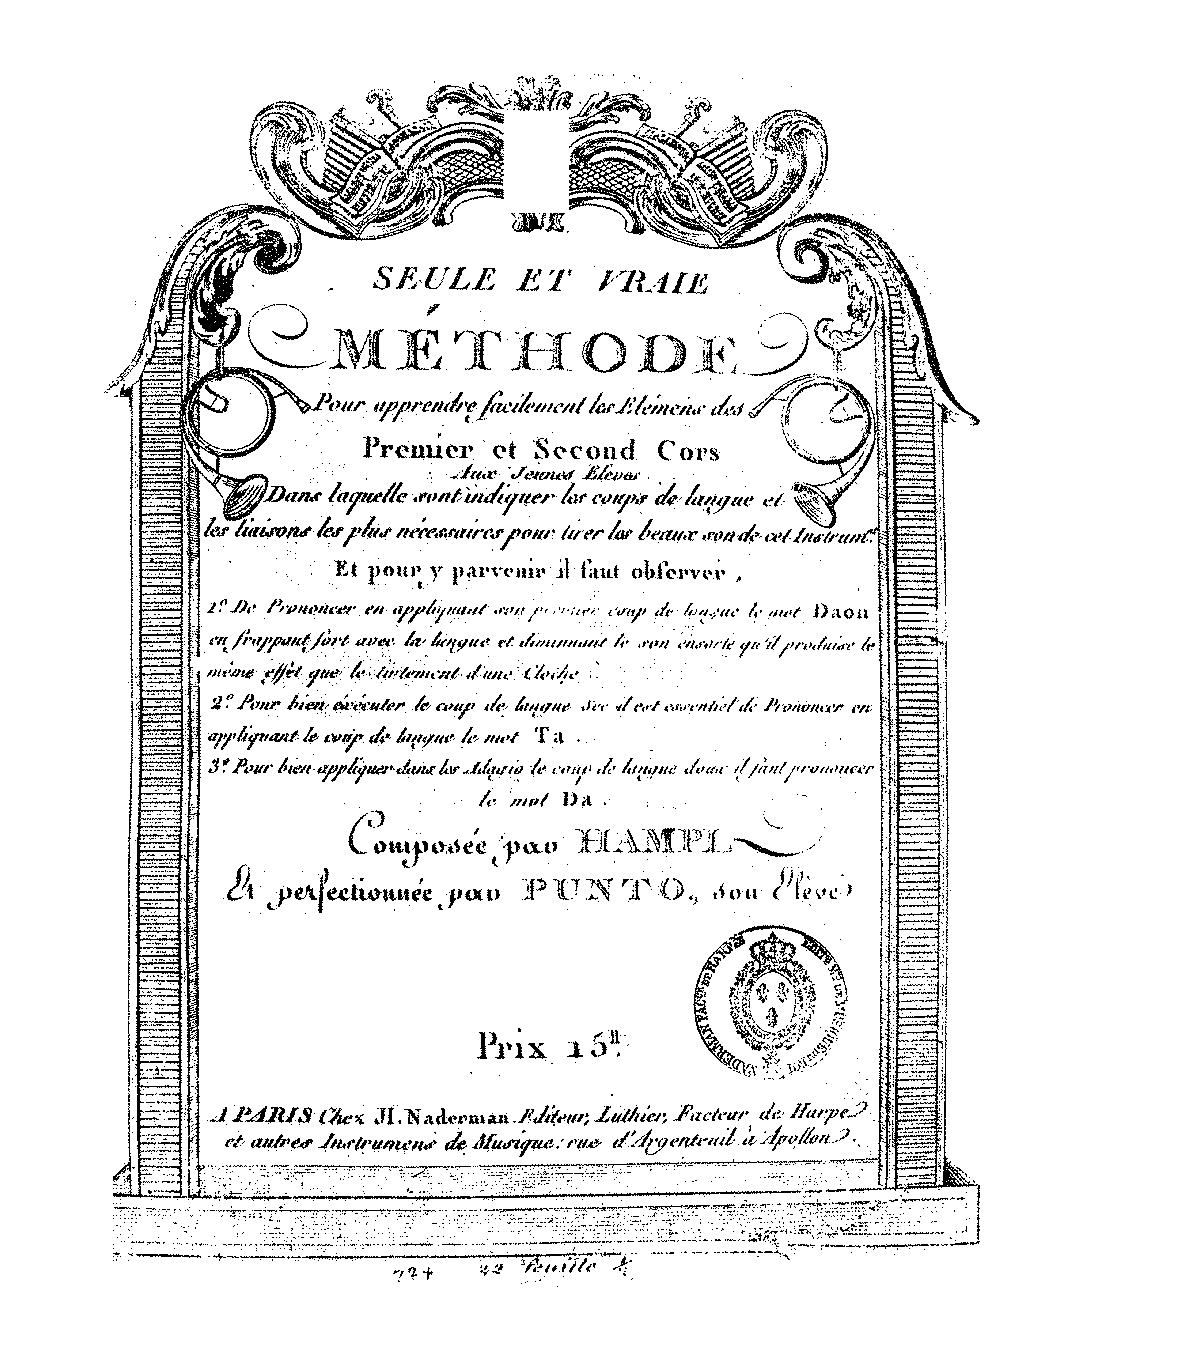 PMLP140927-Hampel-Punto, Méthode - Paris; H. Naderman.pdf